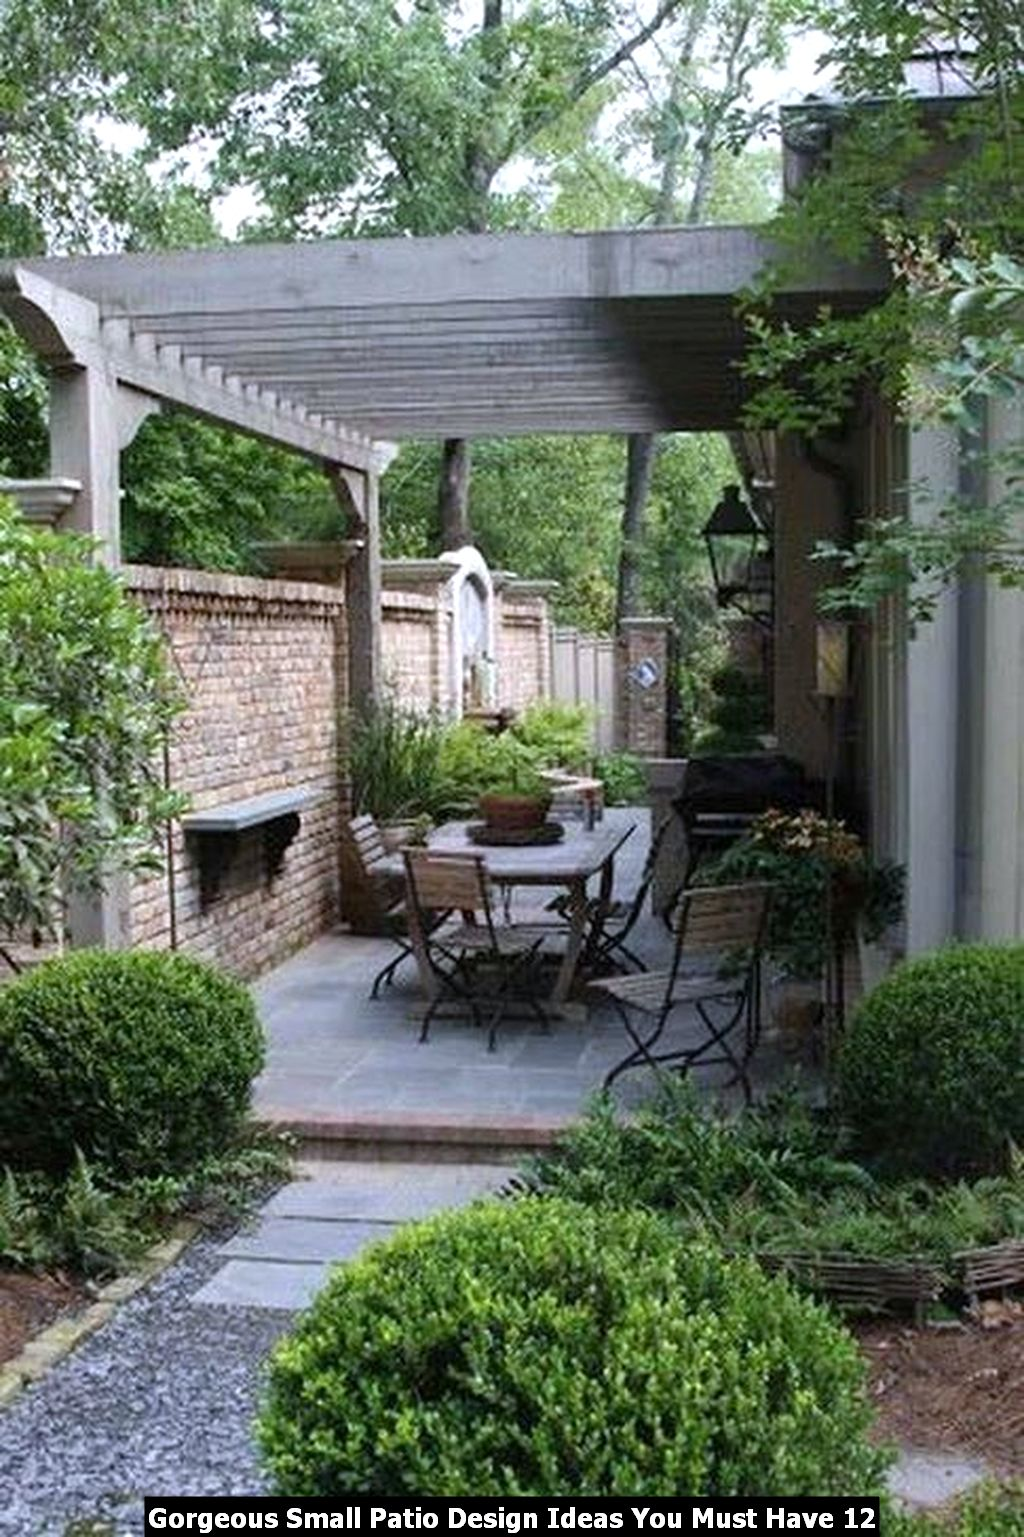 Gorgeous Small Patio Design Ideas You Must Have 12